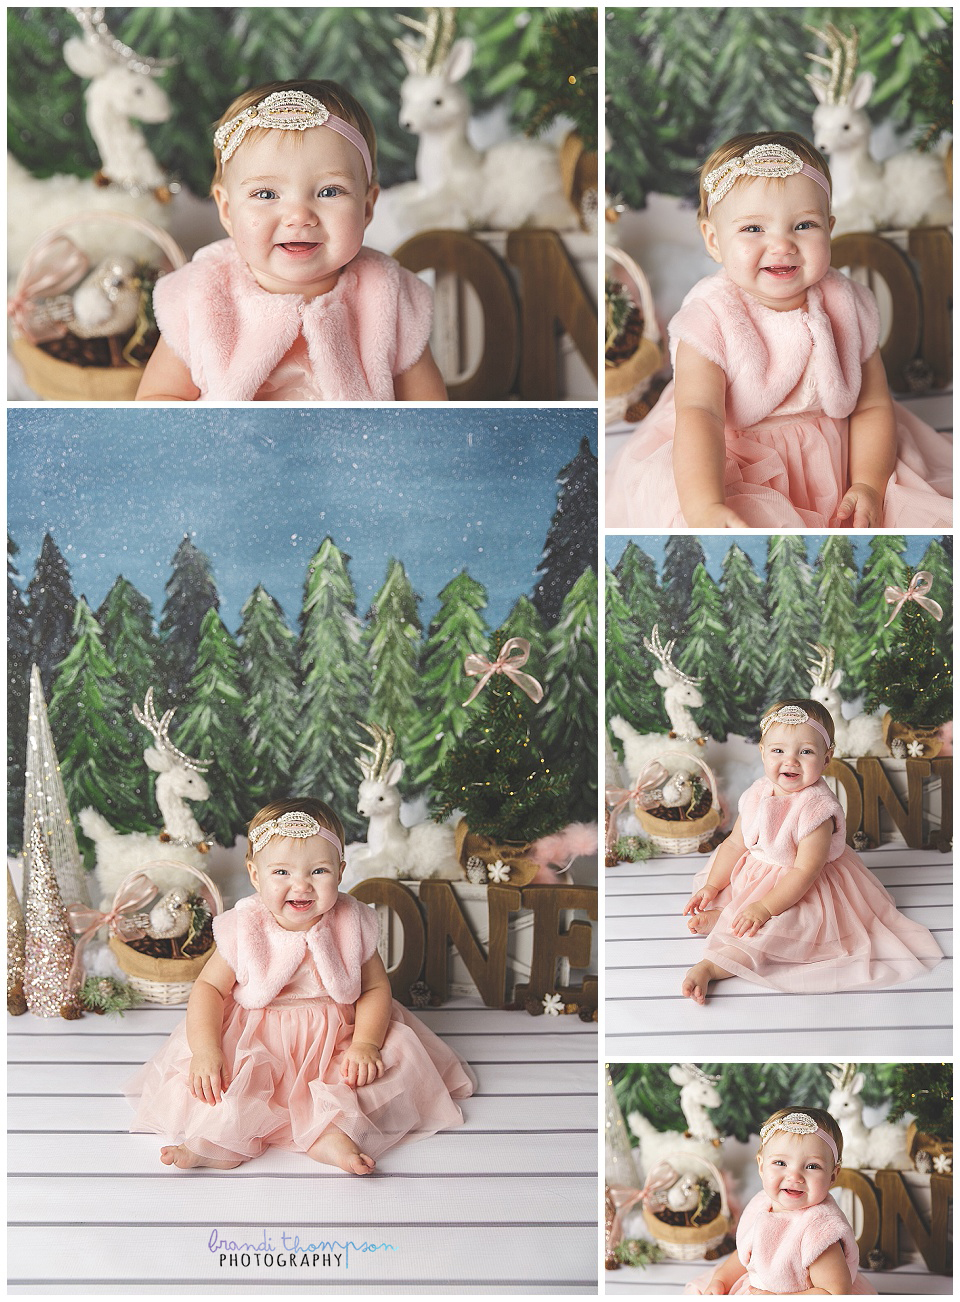 first birthday cake smash with winter theme and touches of pink, with baby girl in pink dress, plano, tx studio